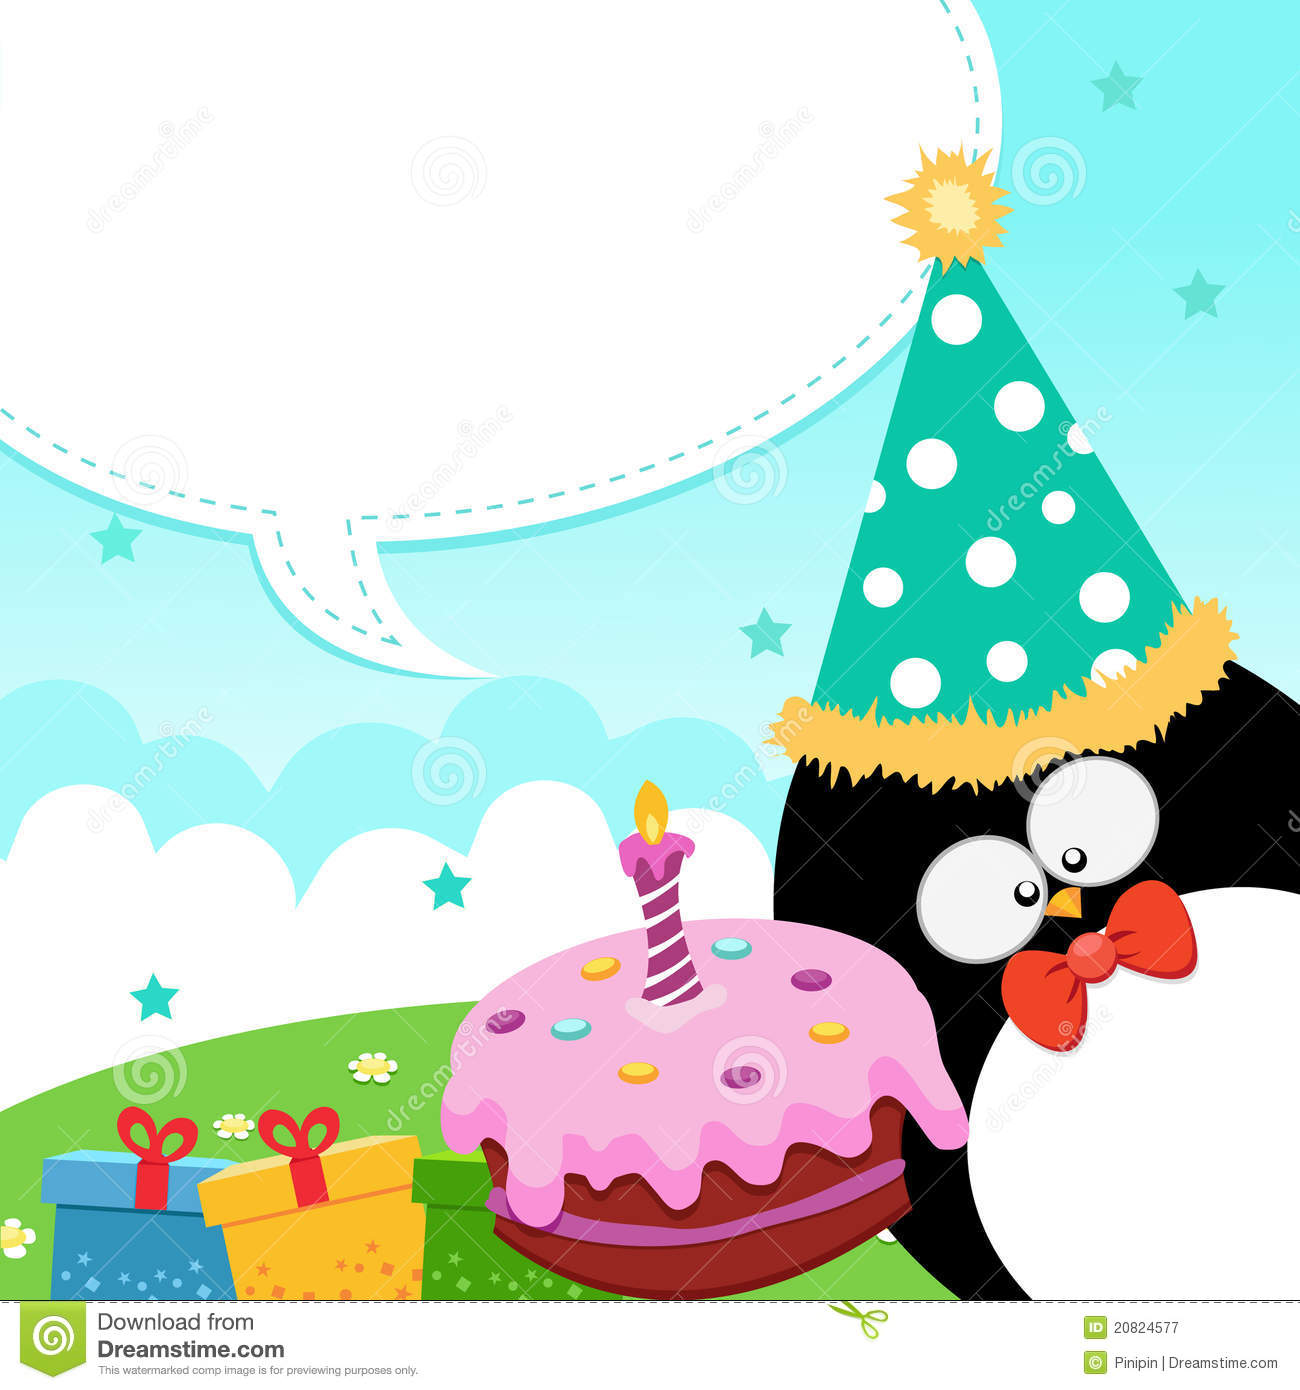 happy birthday card penguin stock photos, images,  pictures, Birthday card